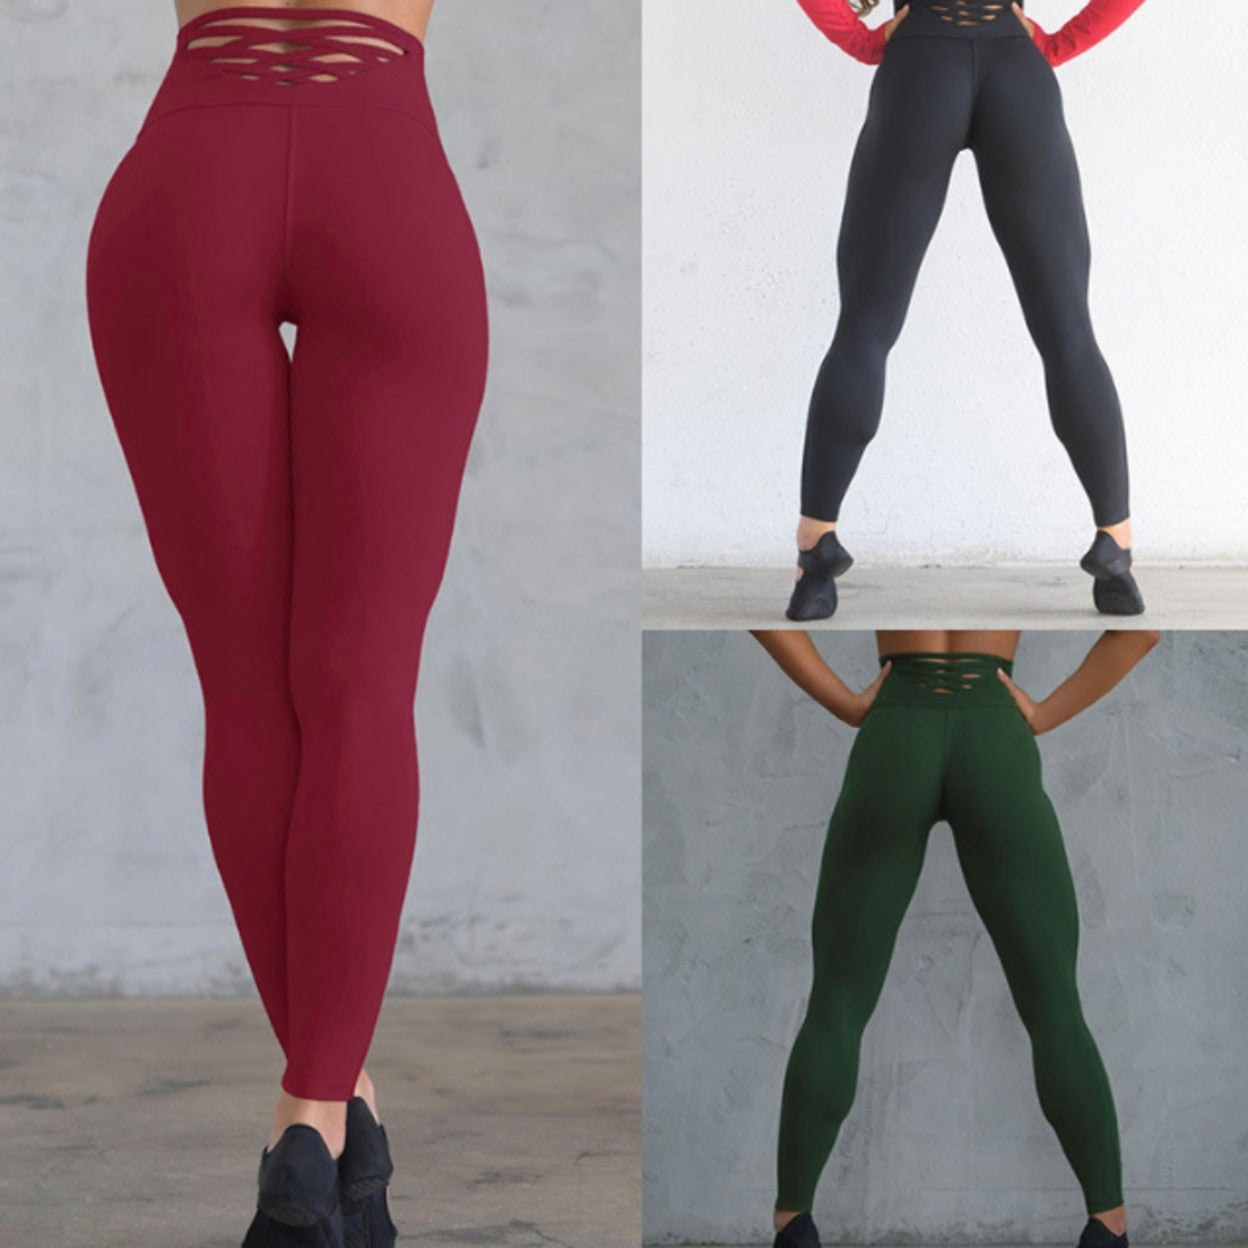 Shop Women S High Waist Yoga Pants Tummy Control Slimming Booty Leggings Workout Running Butt Lift Tights Overstock 31172888